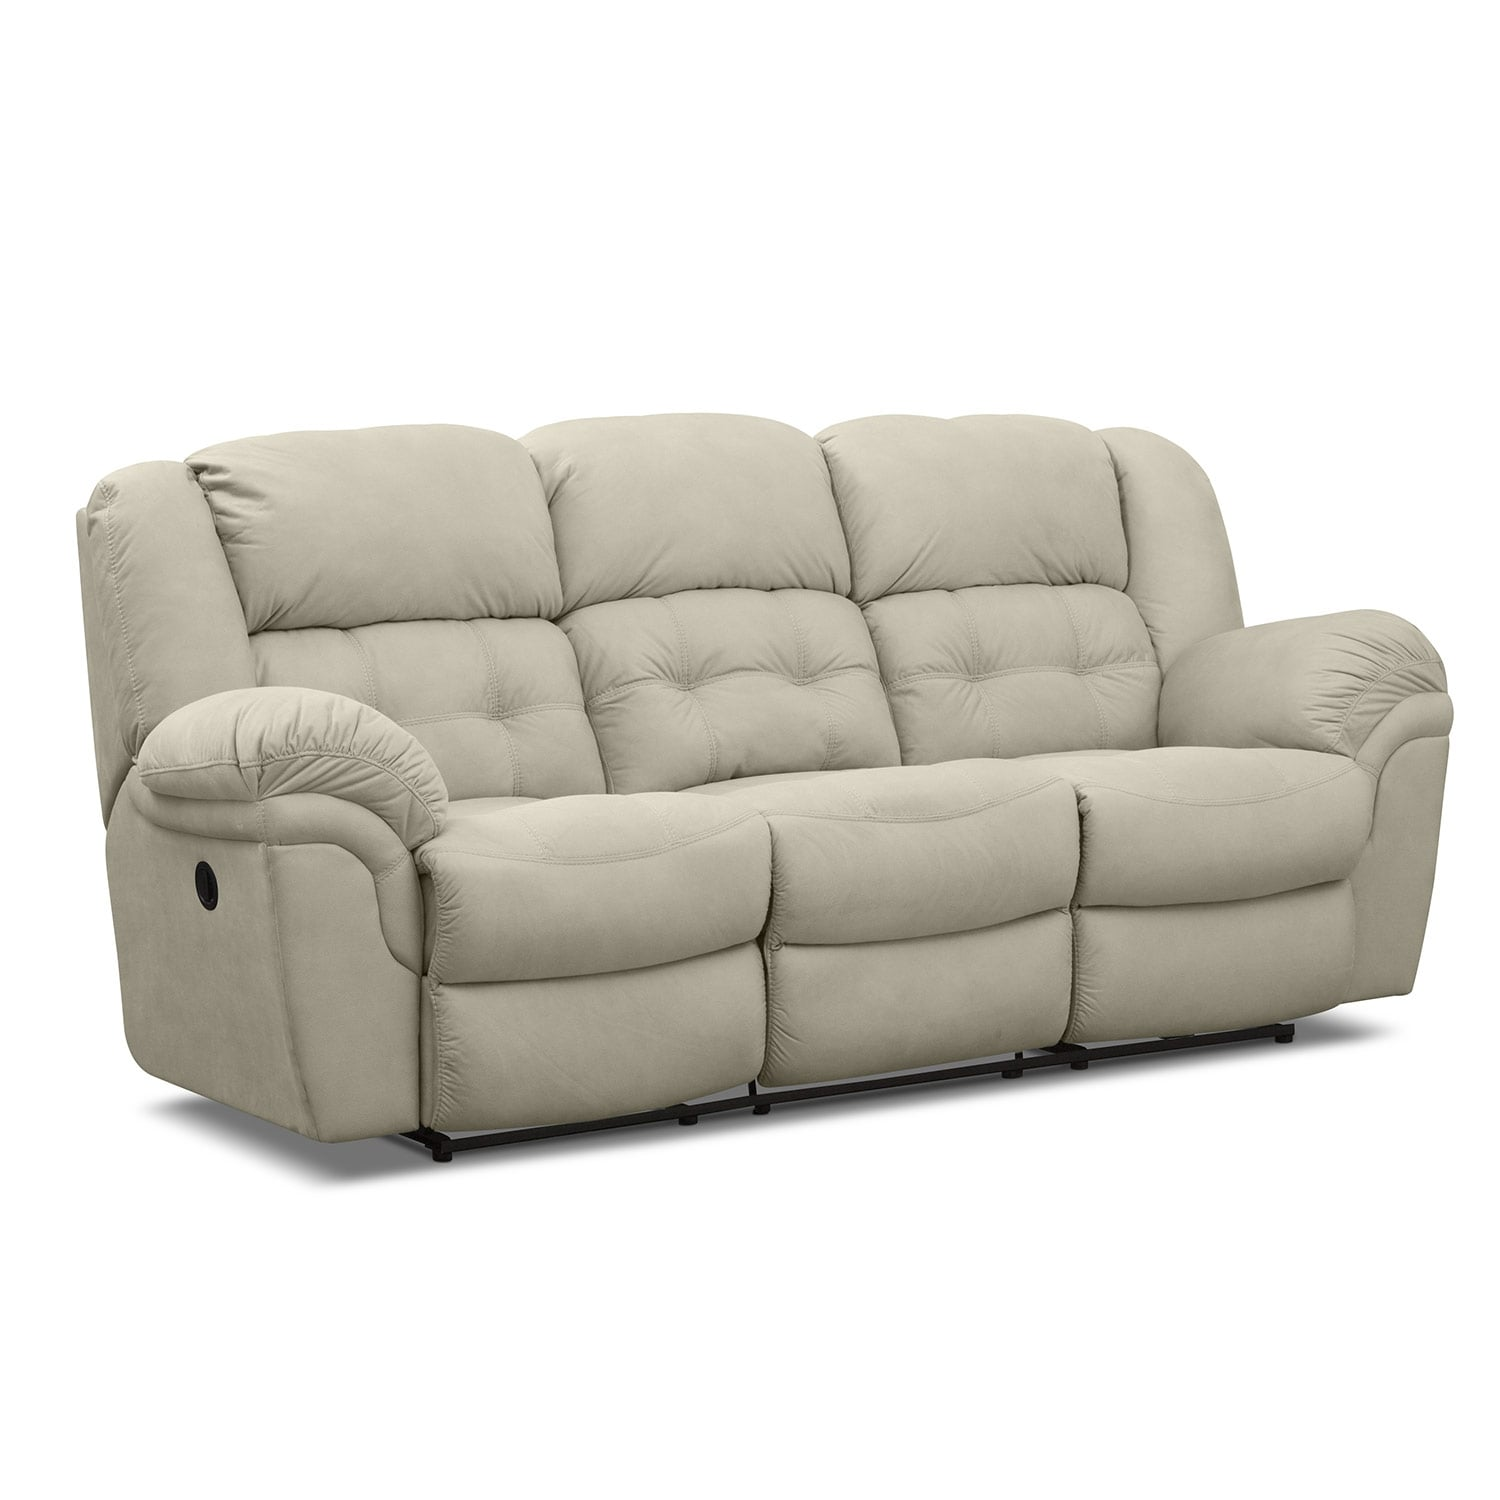 Lancer Beige Ii Upholstery Power Reclining Sofa Value